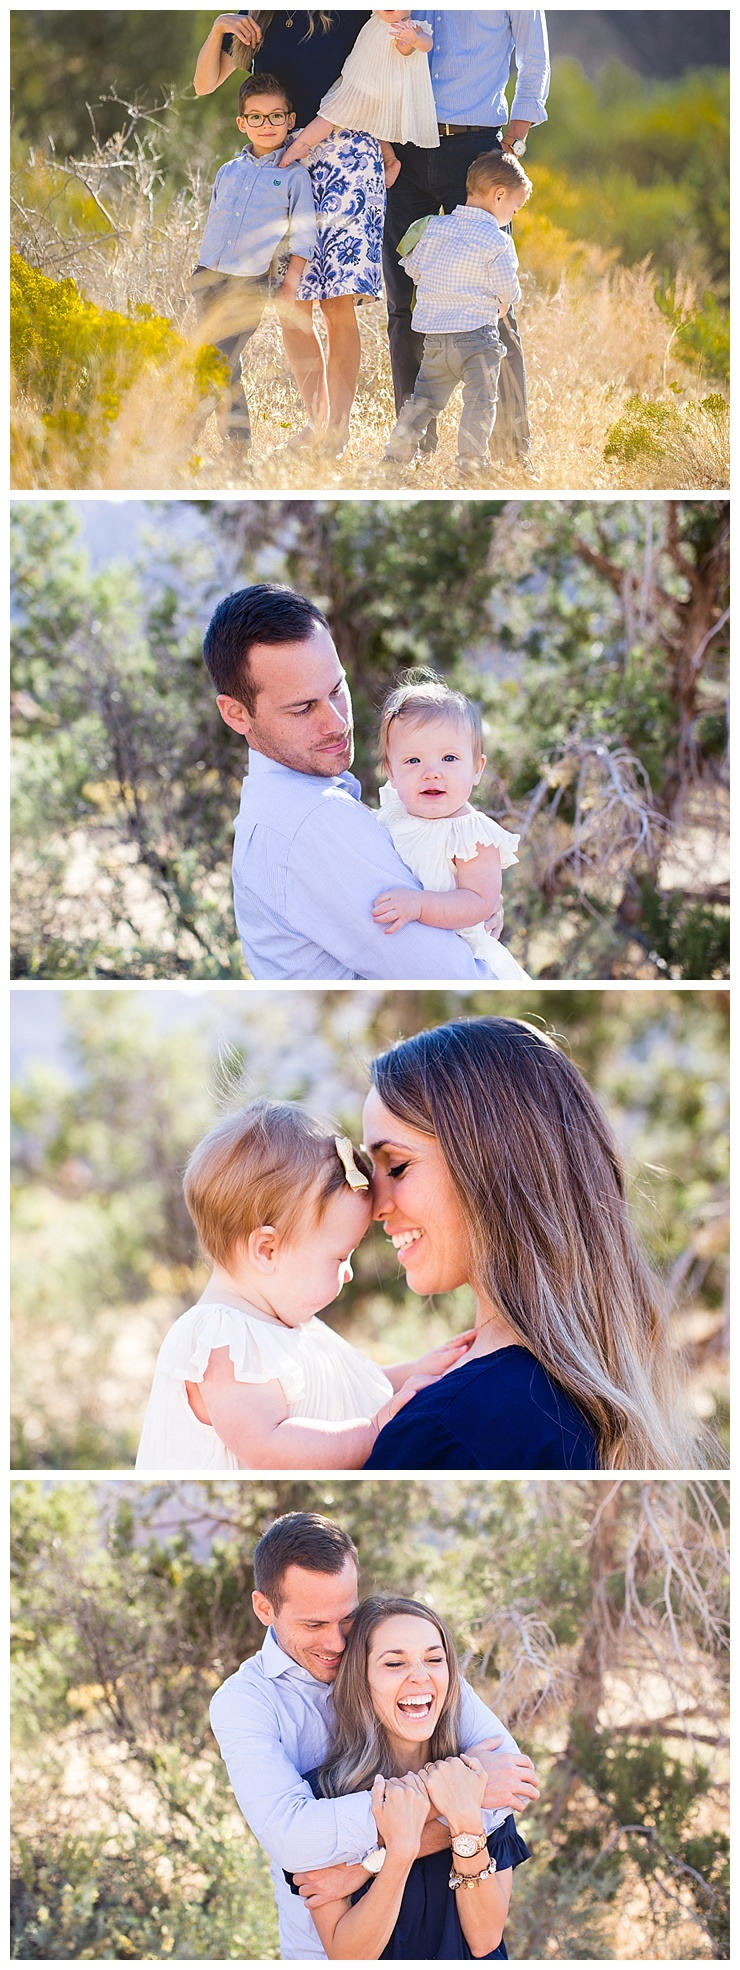 Riverside California Family Photographer Ryan and Alarie Zion National Park Photographer www.Michellegiffordphotography.com